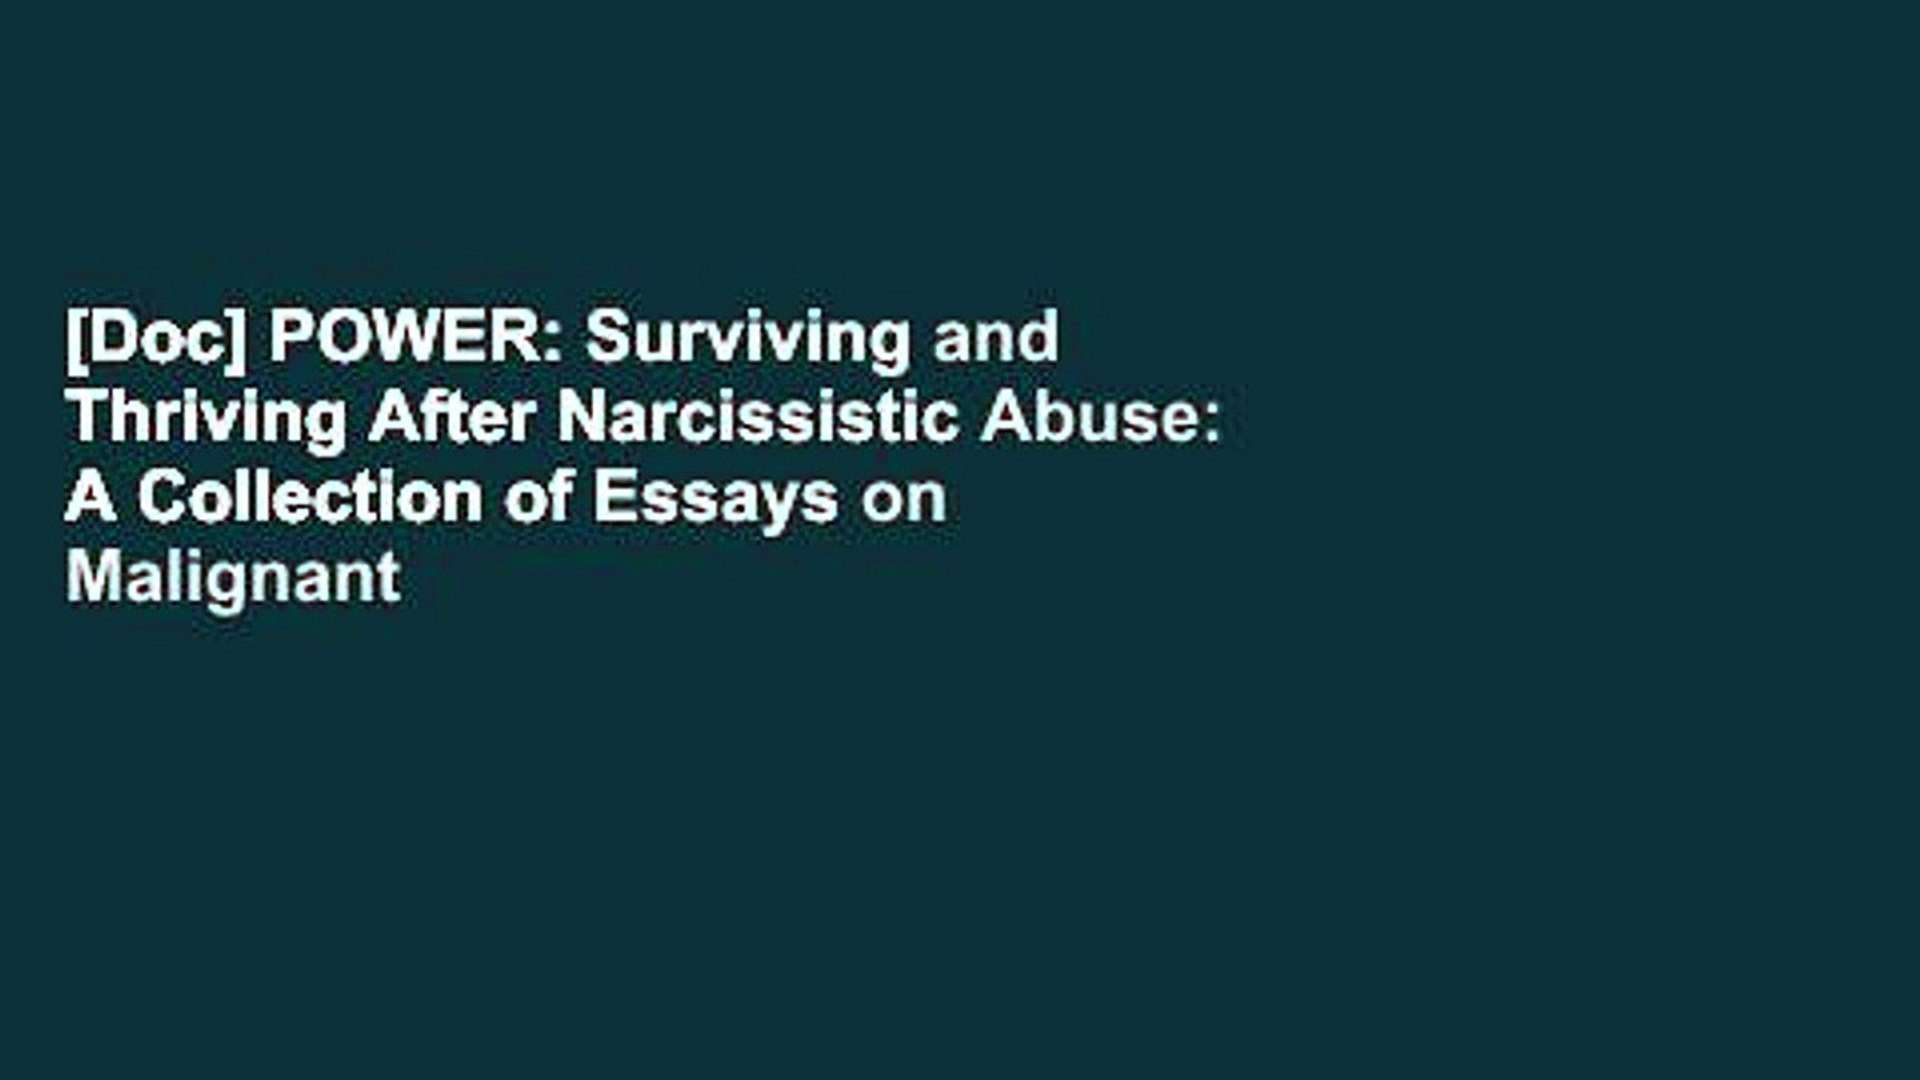 Doc] POWER Surviving and Thriving After Narcissistic Abuse A 1920x1080